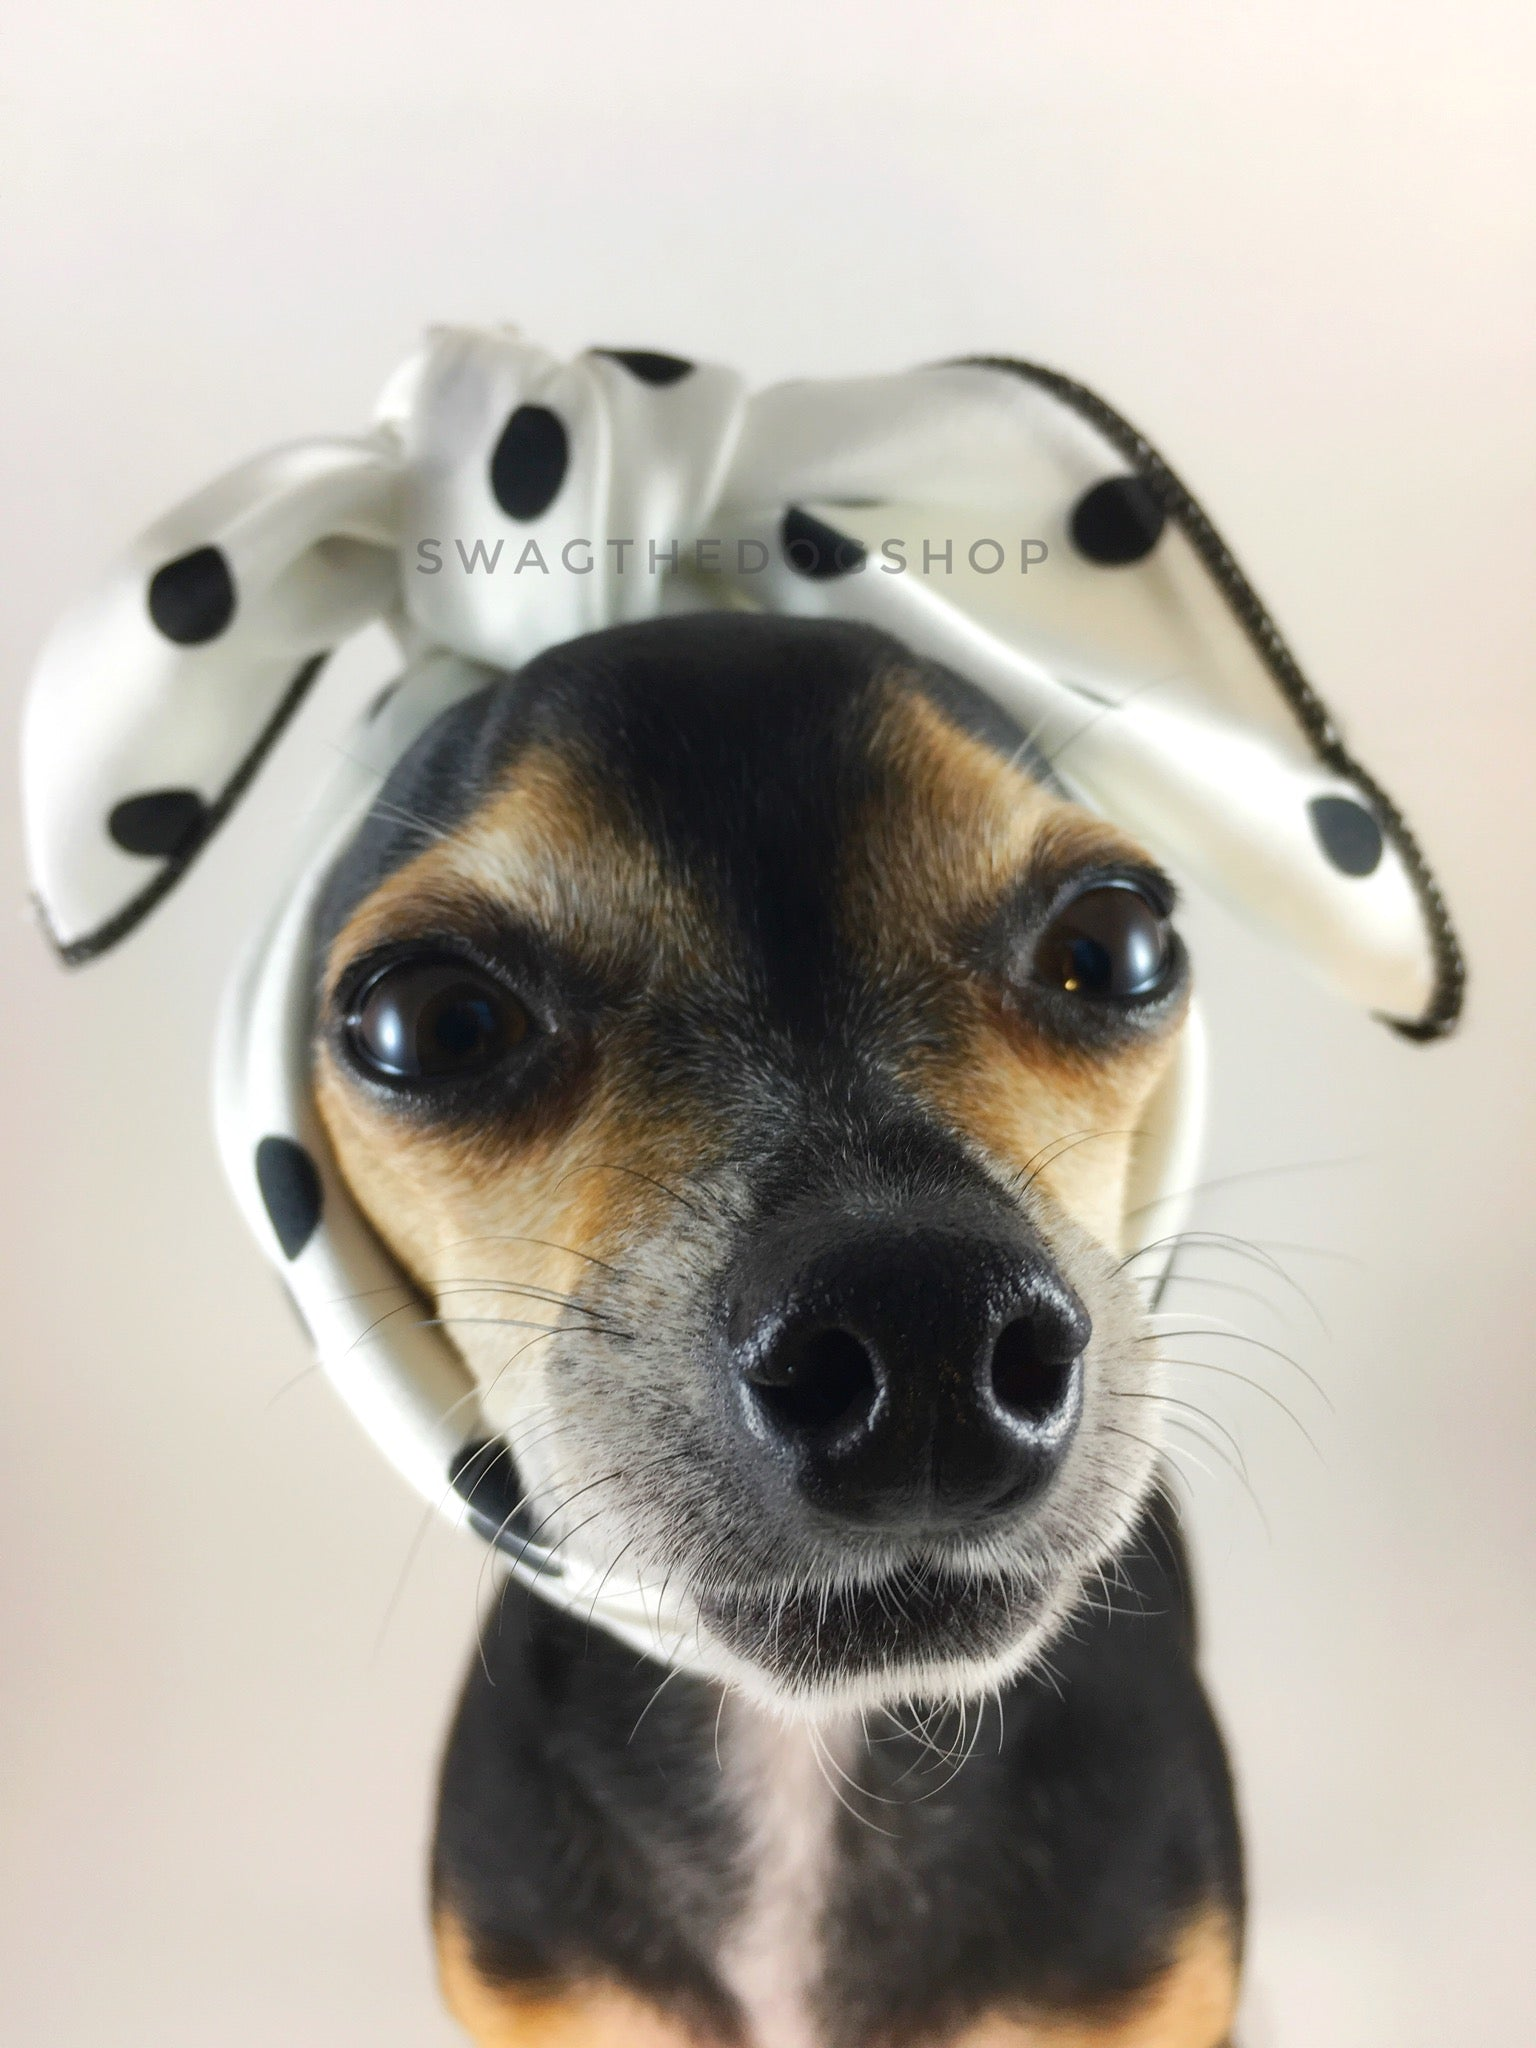 Polka Dot White Swagdana Scarf - Bust of Cute Chihuahua Wearing Swagdana Scarf as Headband. Dog Bandana. Dog Scarf.